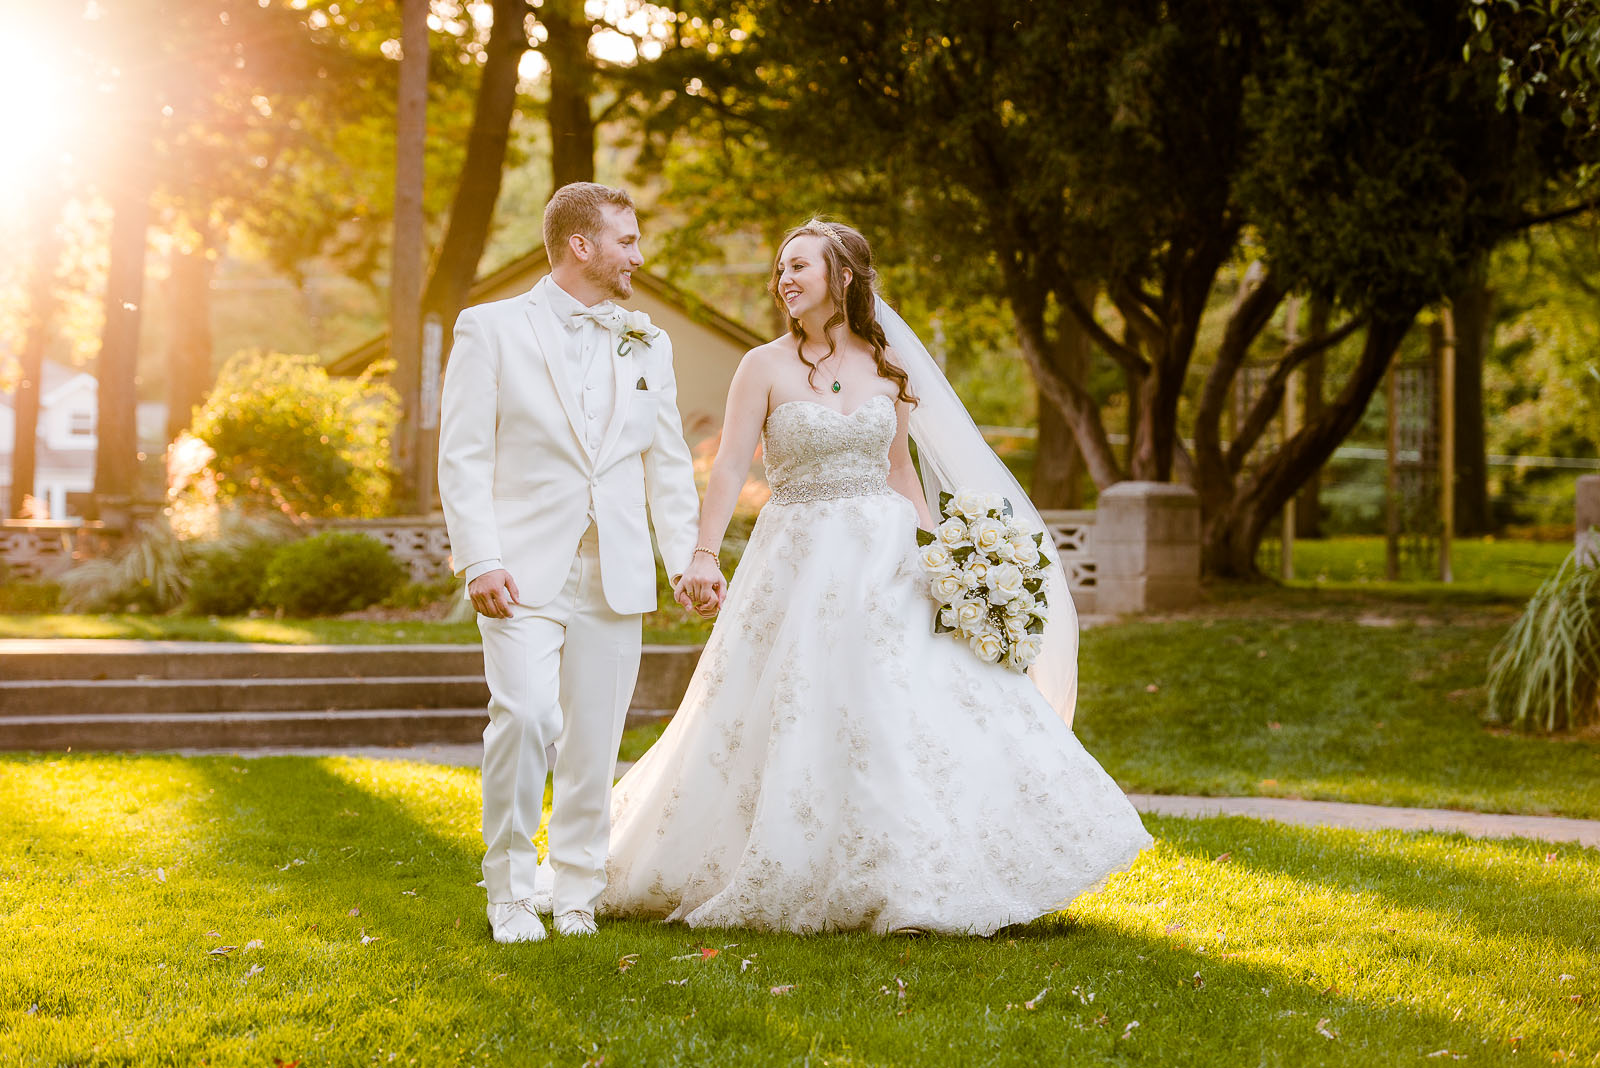 Eric_and_Christy_Photography_Blog_Wedding_Eva_Andrew-45